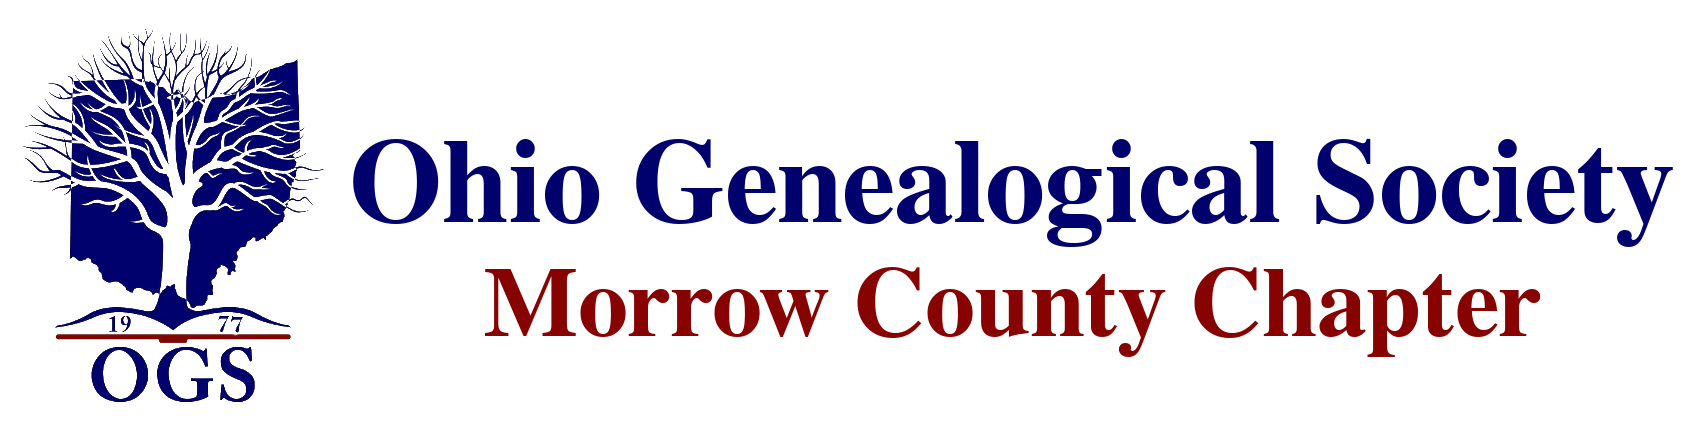 Morrow County Genealogy Society